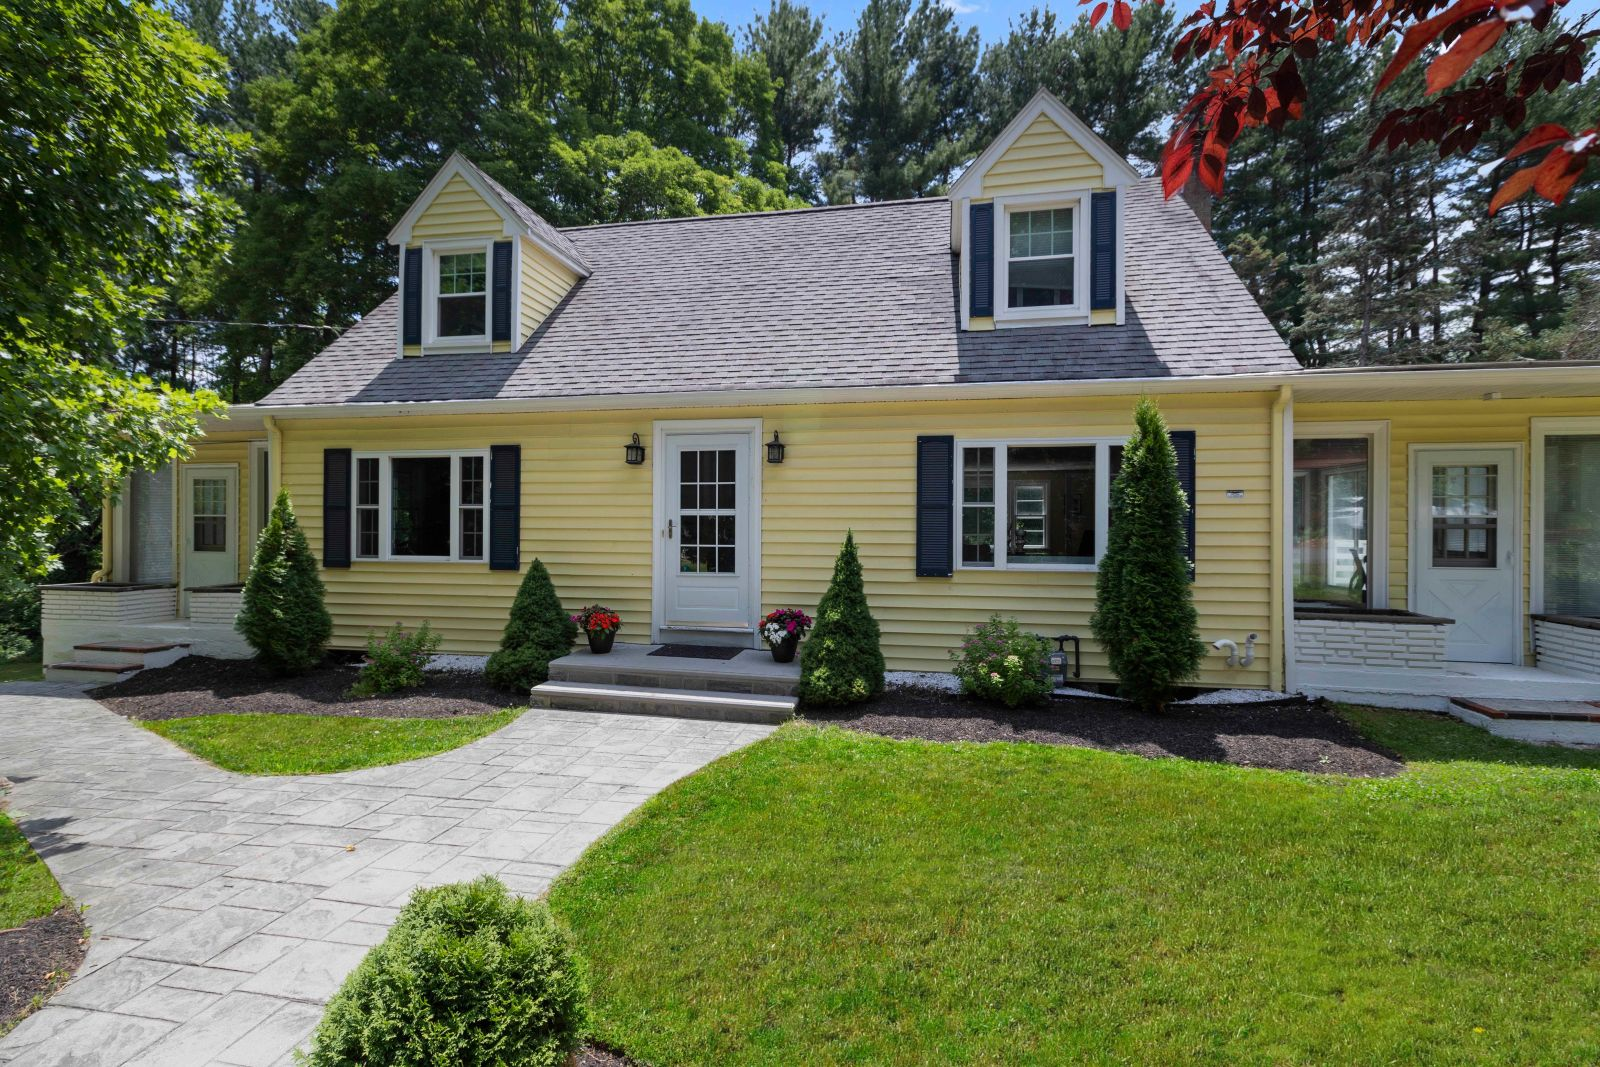 Home for sale in Sudbury MA-front of house